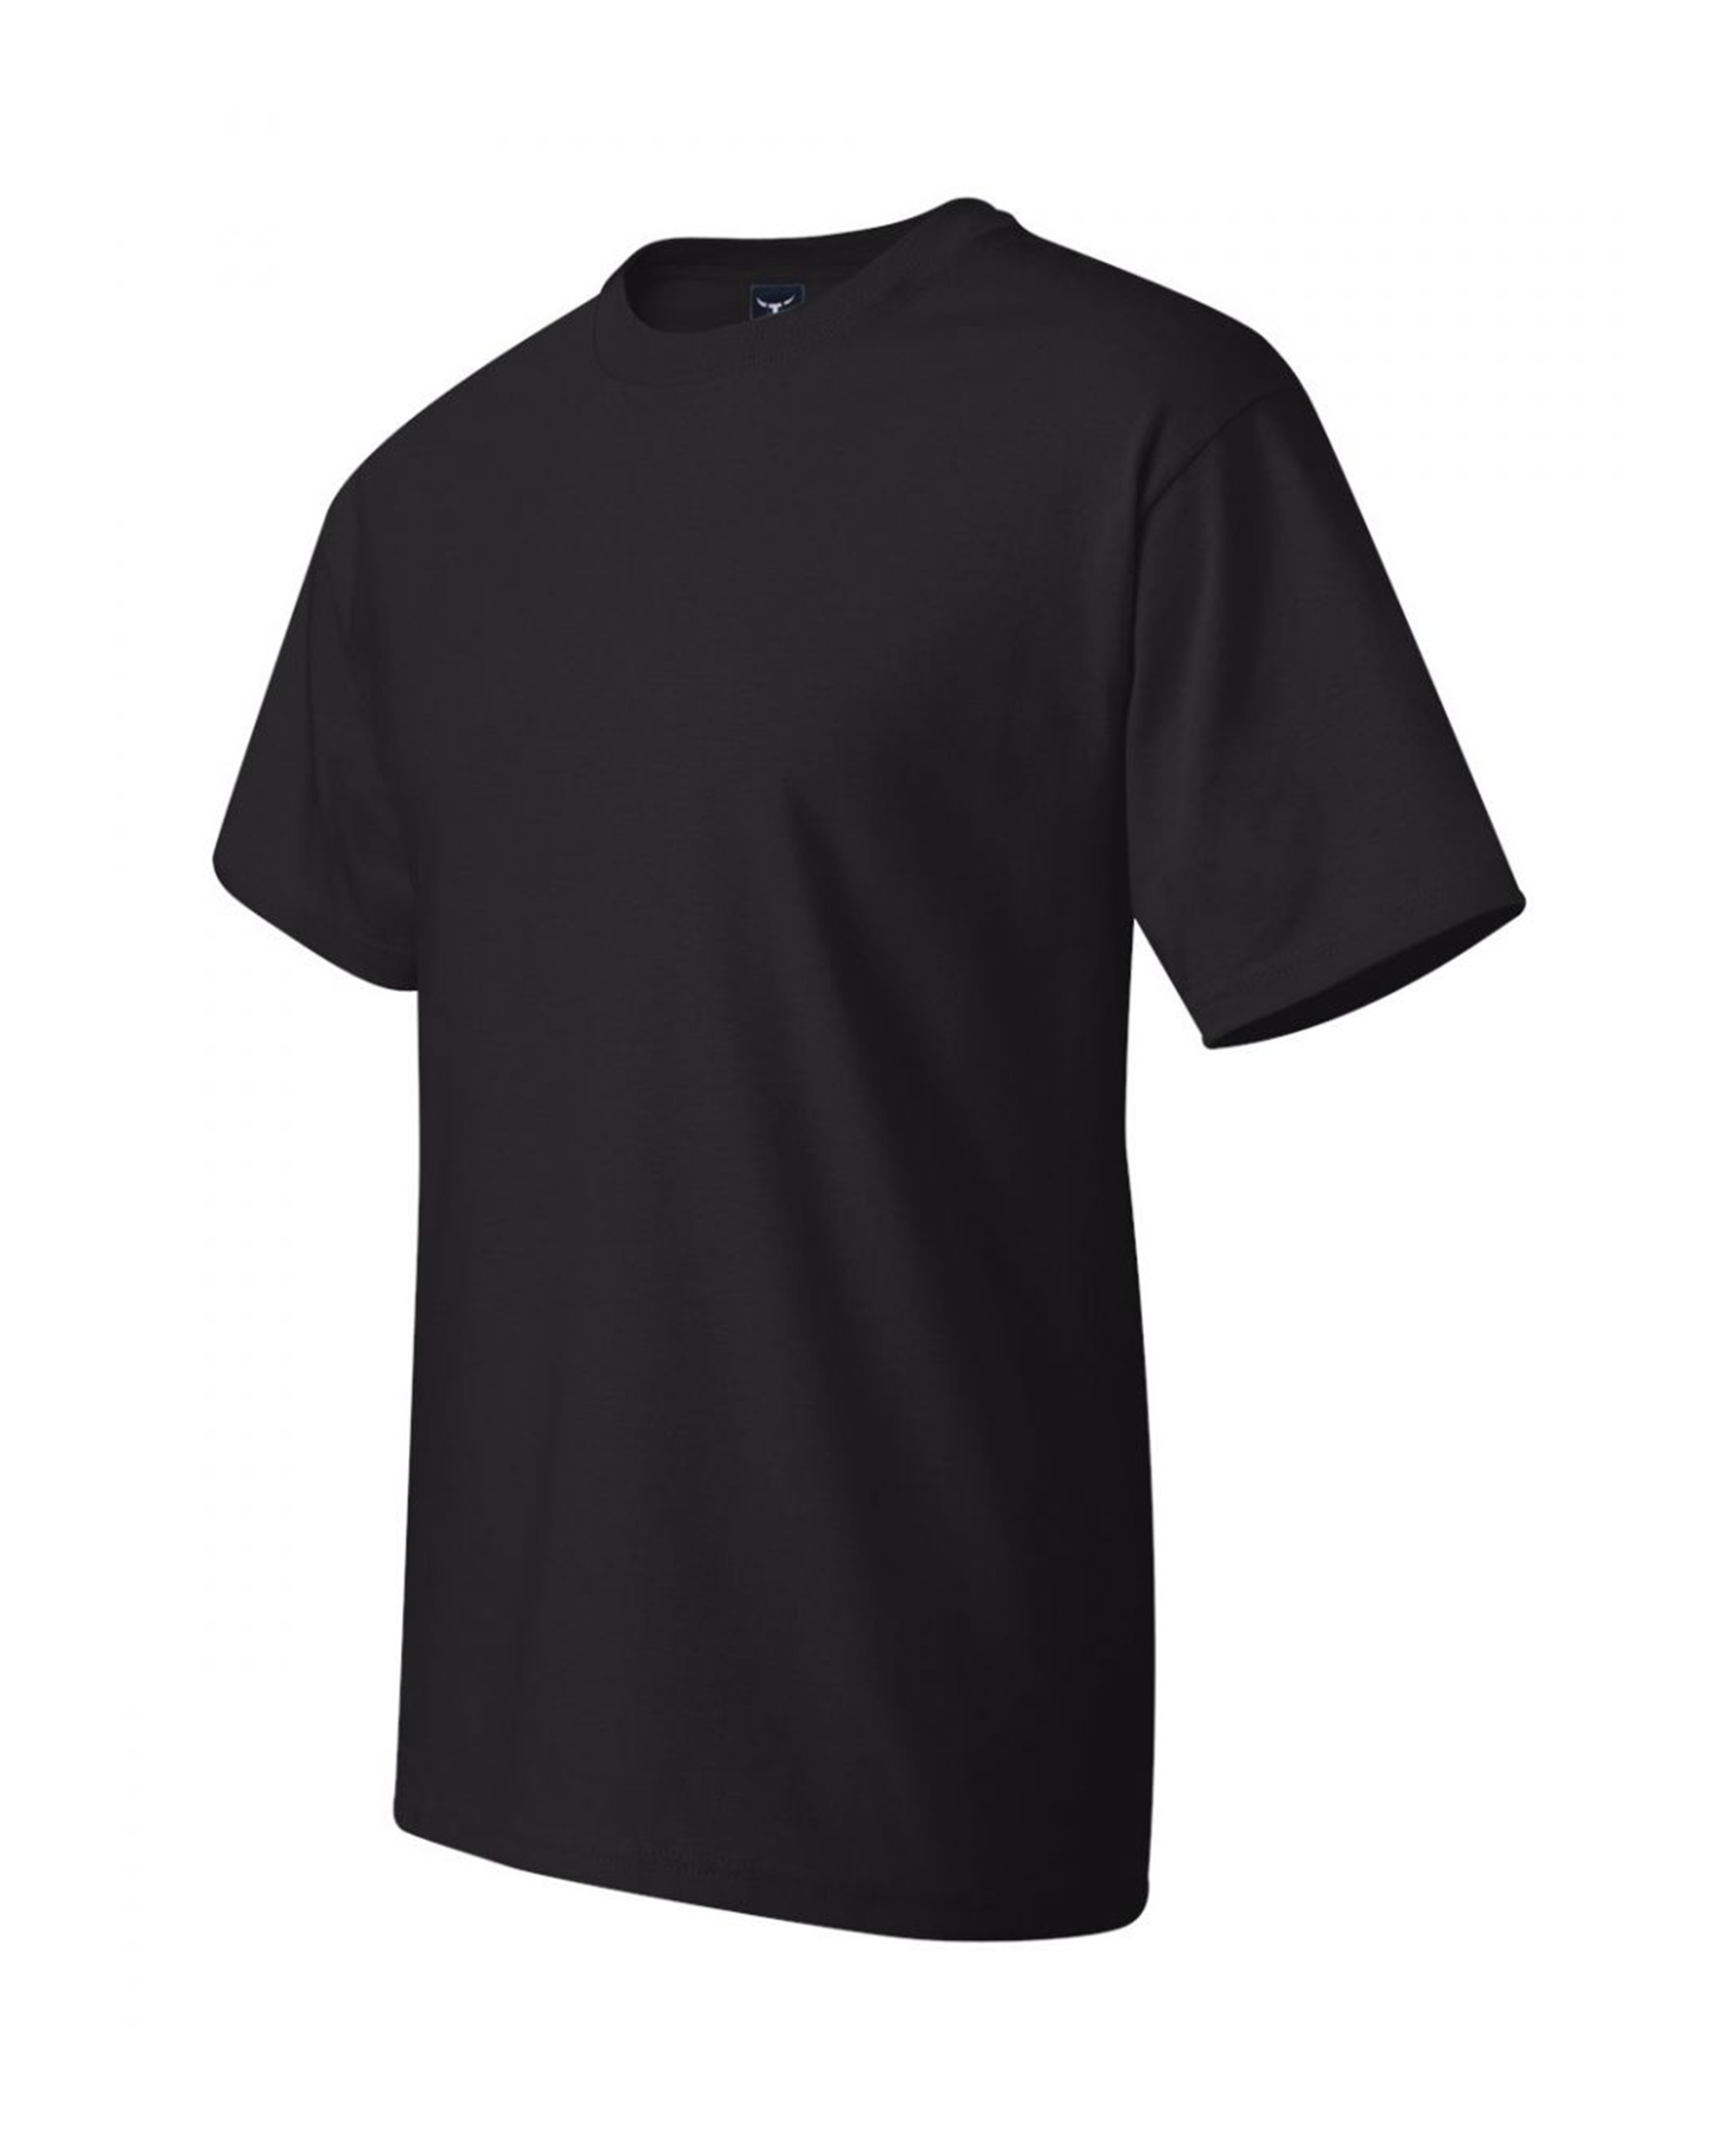 3 pack Beefy Heavyweight T-shirt - T-Shirts - Hanes - BRANMA